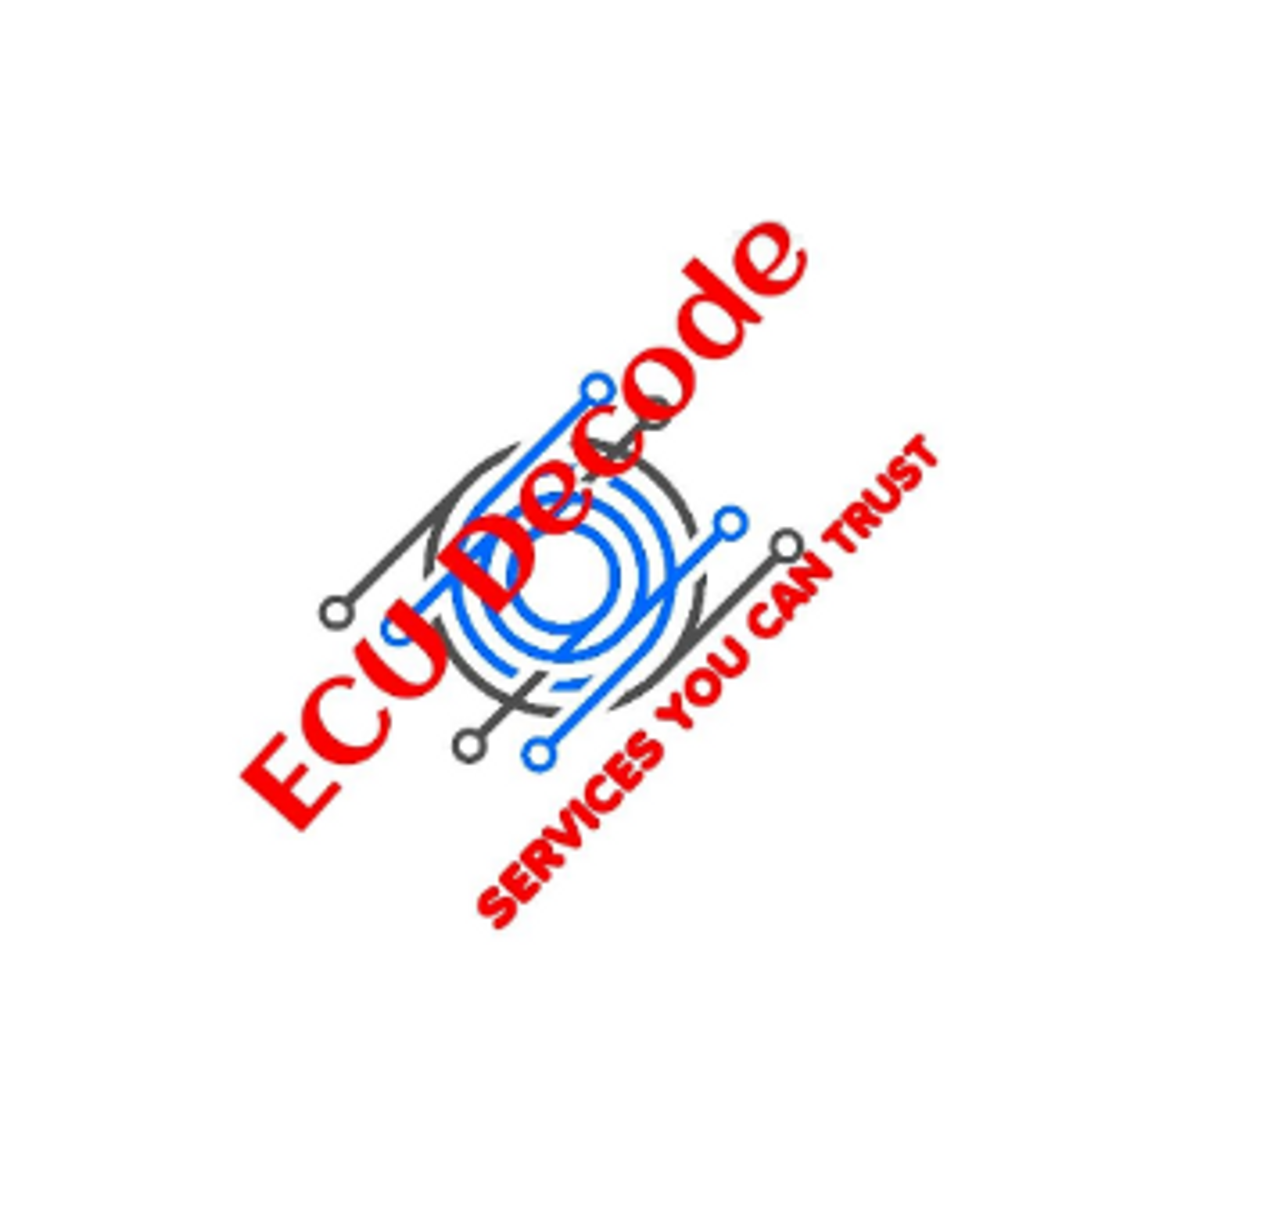 Audi immobiliser bypass   Audi Immo Delete   Audi Immo Off    Audi Immobiliser Services From ECU Decode Limited.